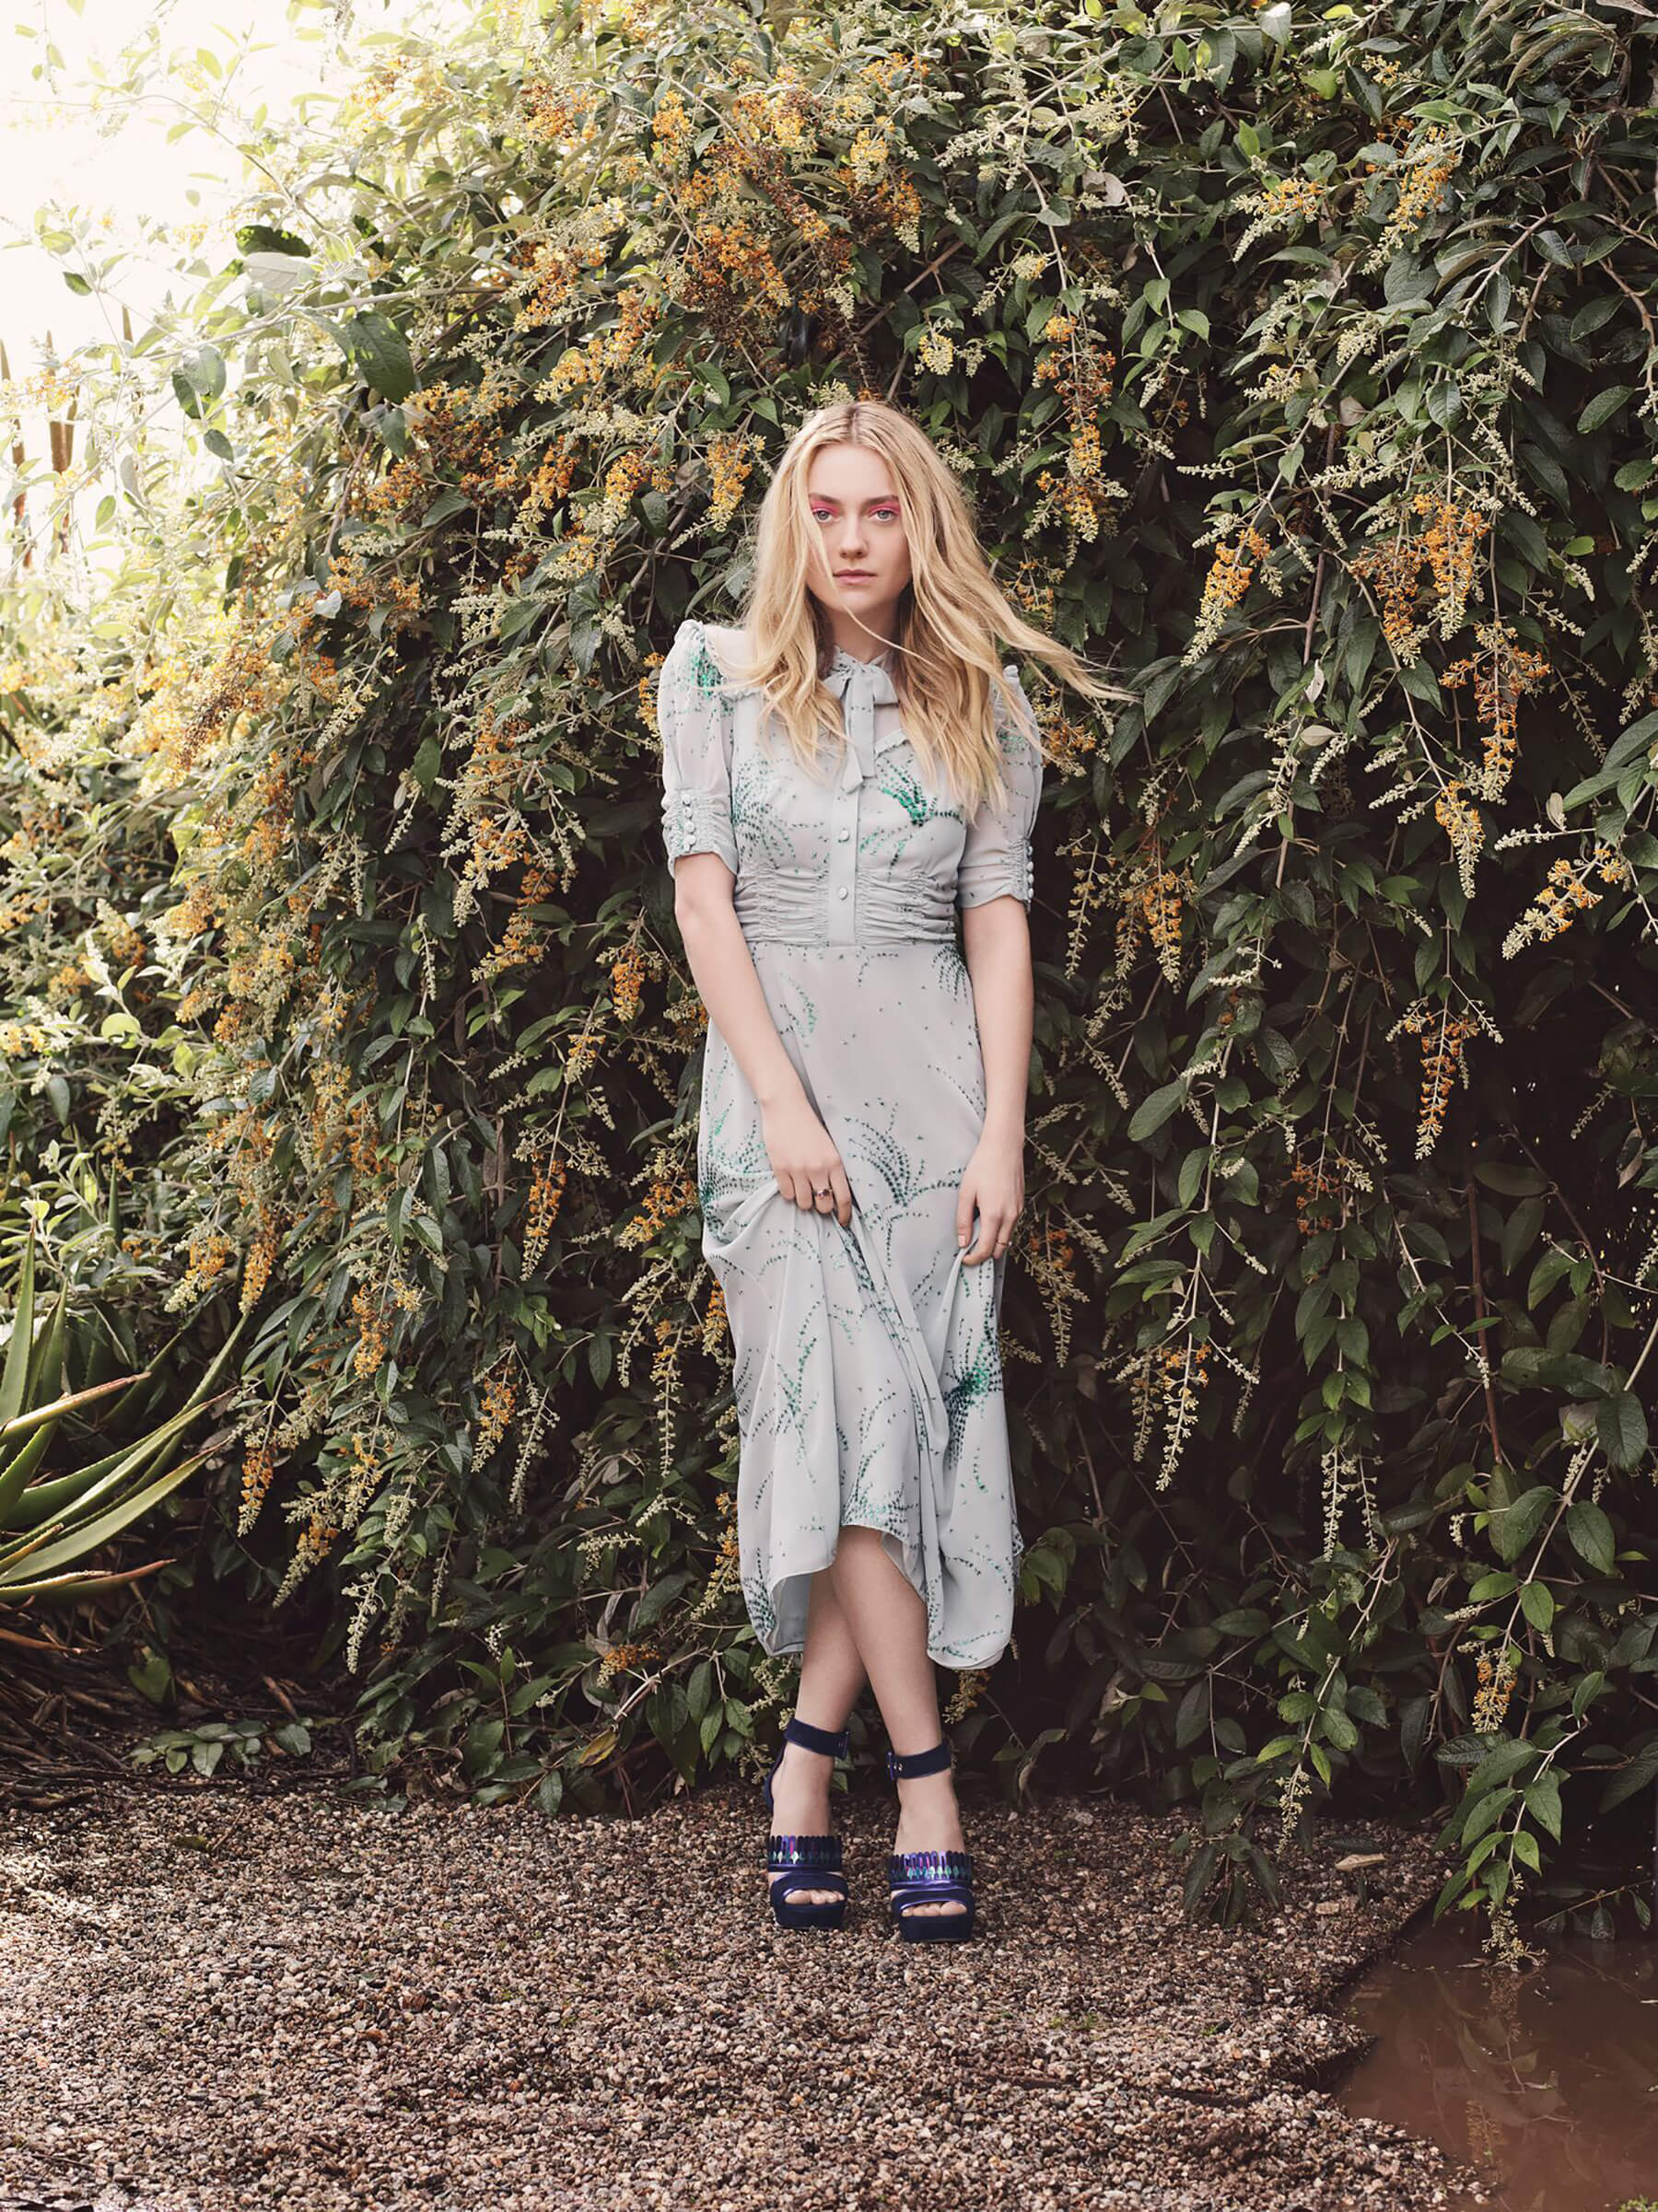 JIMMY CHOO SS17 STYLE DIARY DAKOTA FANNING WEARING THE KATHLEEN SHOE (2)_preview.jpeg